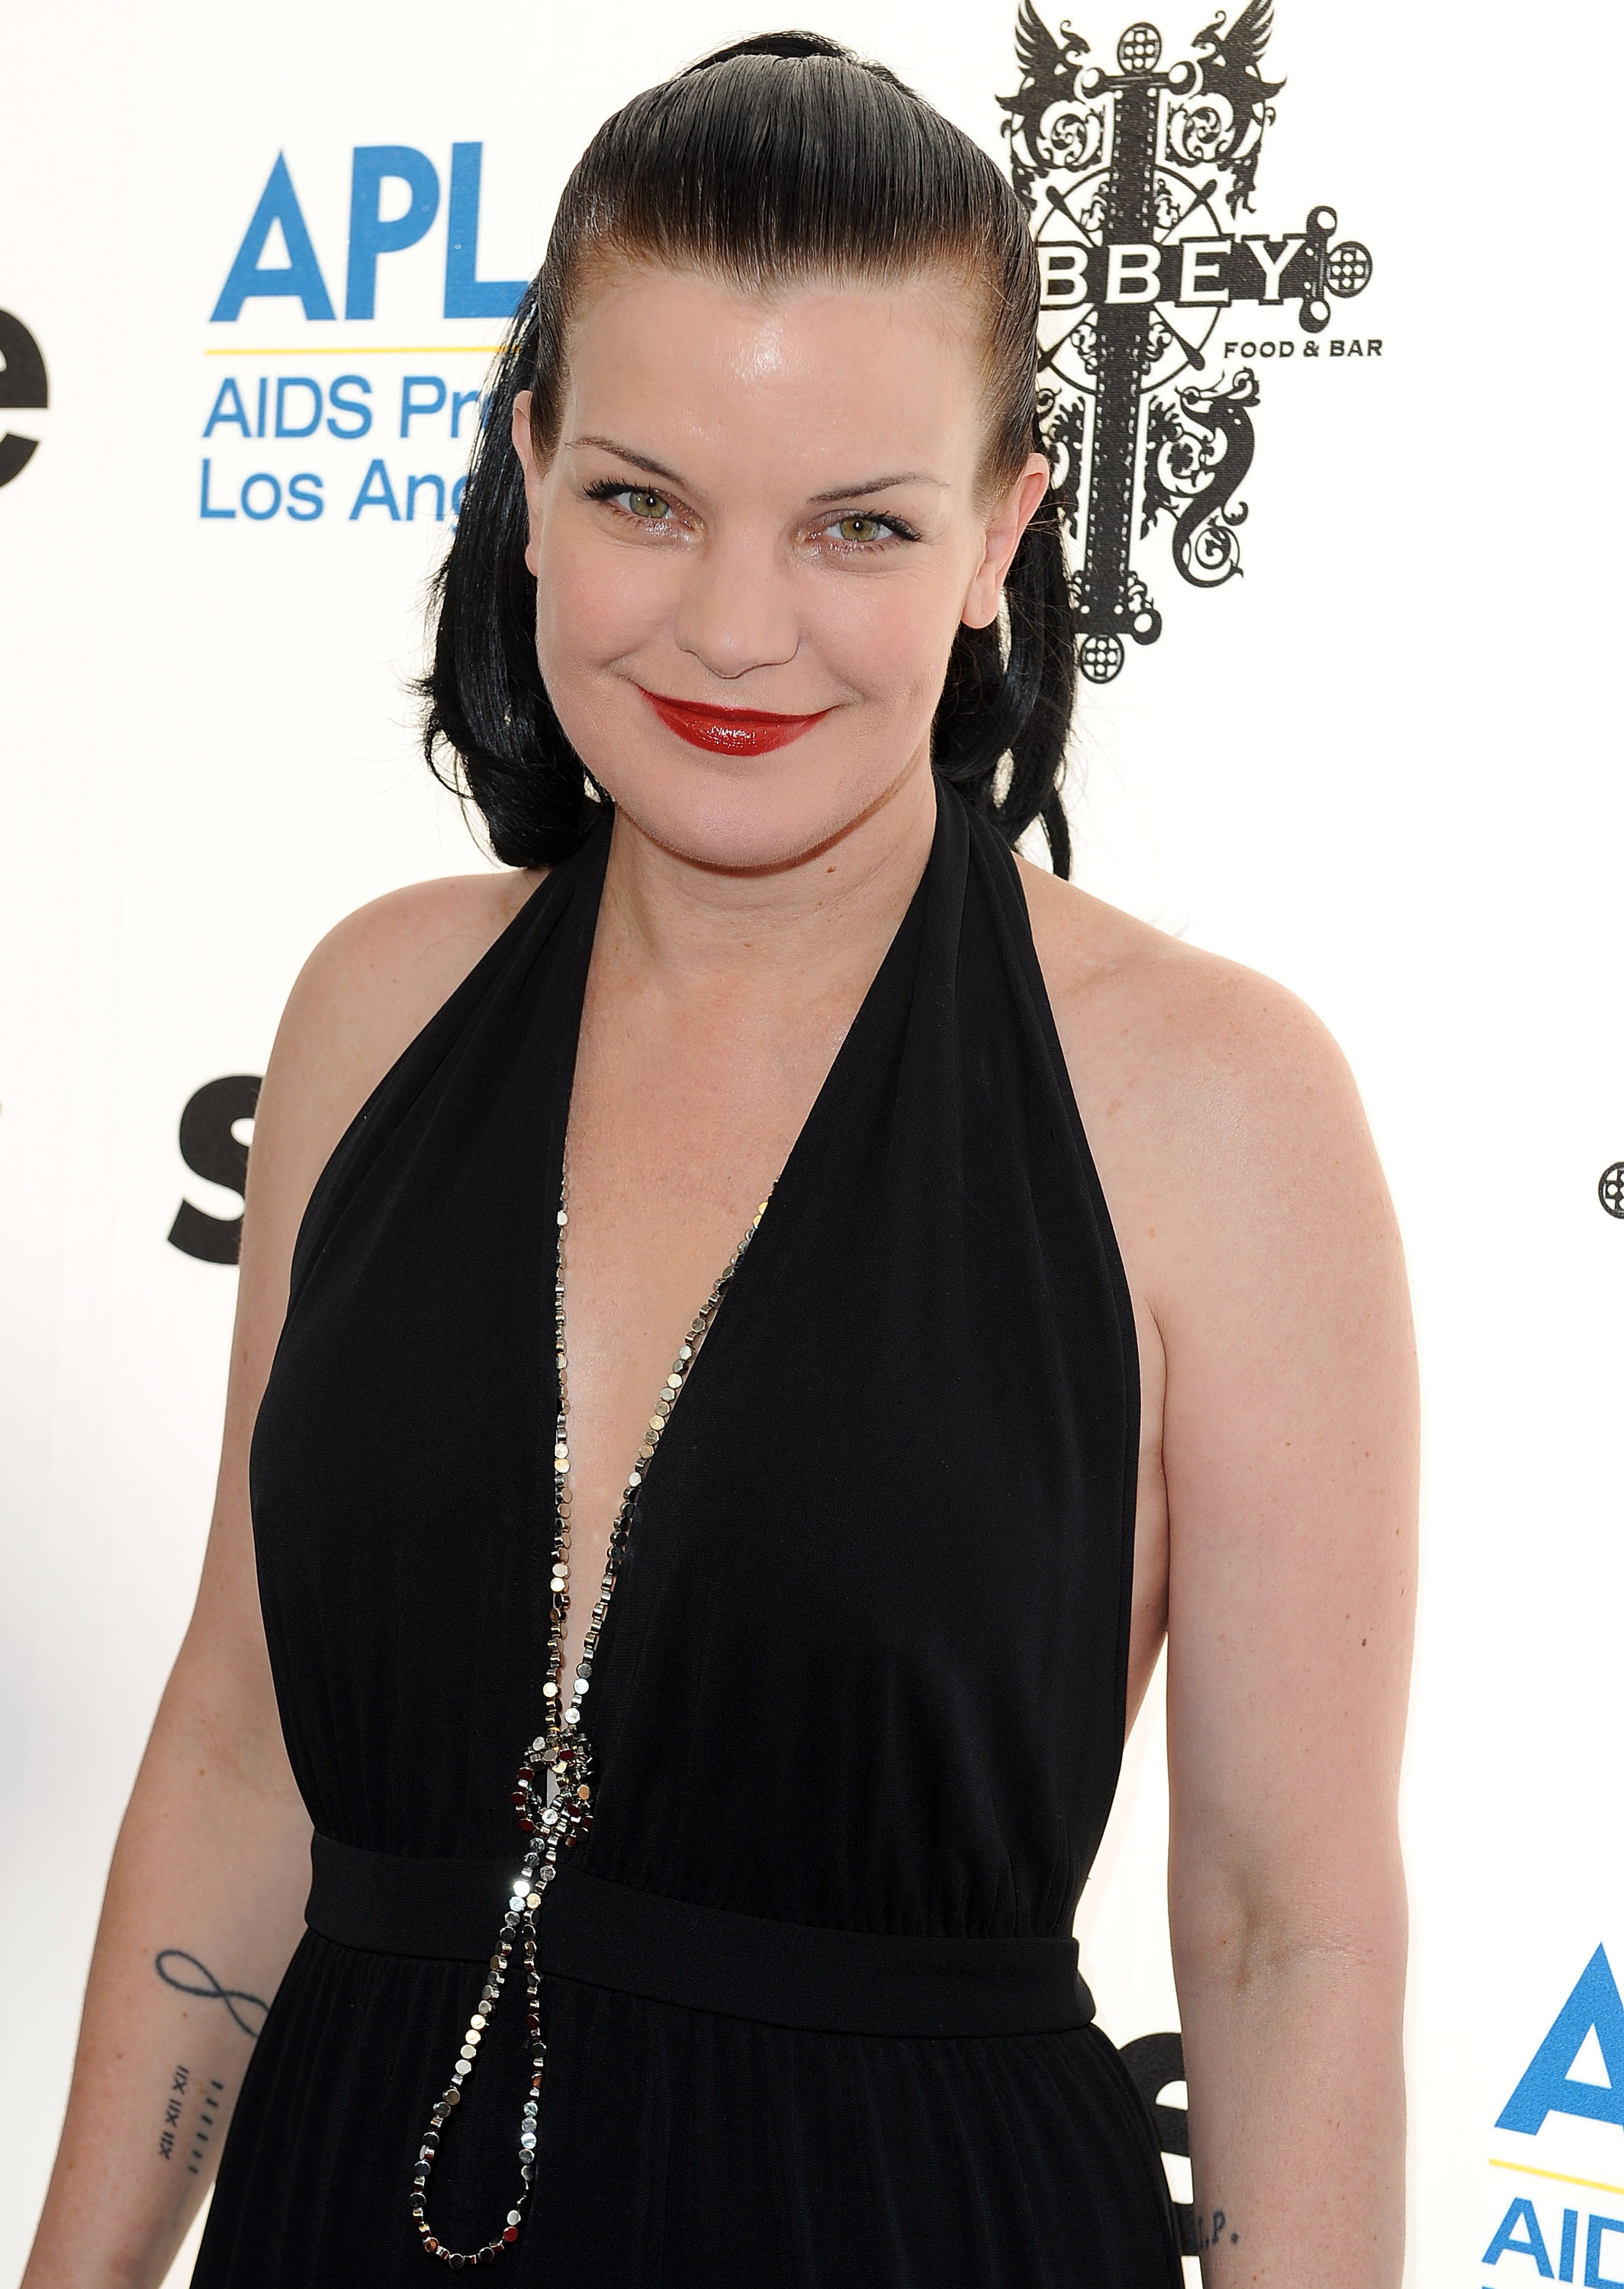 Tragic details that have come out about Pauley Perrette